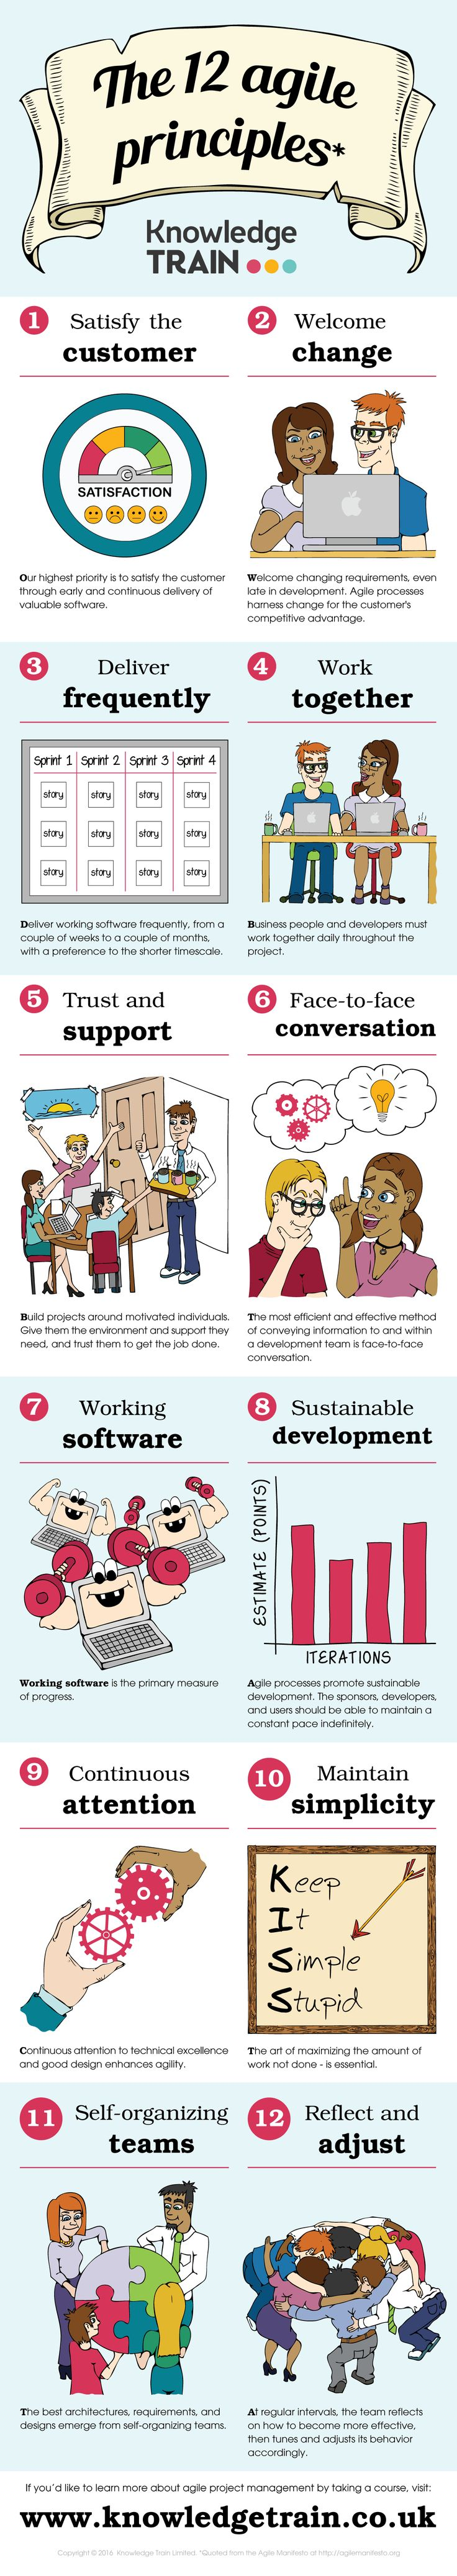 Best 25 agile project management training ideas on pinterest 12 principles for agile project management in beautifully simple text and graphics xflitez Gallery